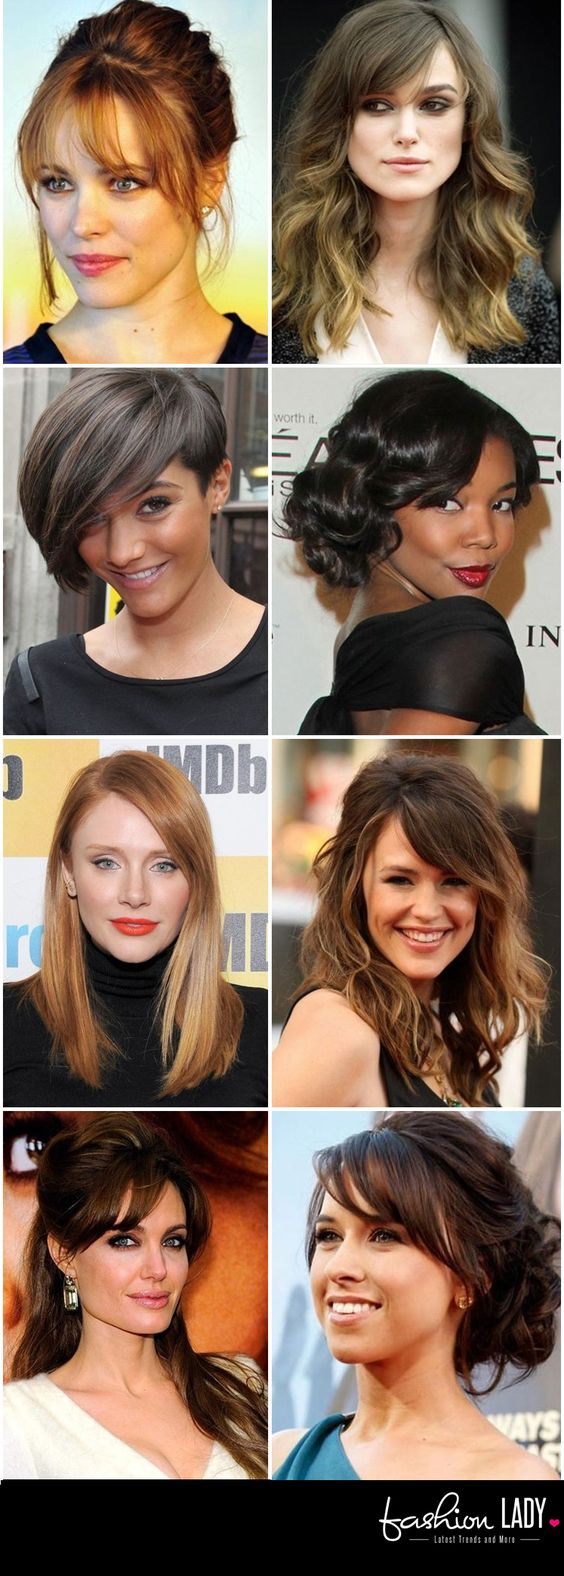 30 amazing hairstyles for big foreheads - tip to hide large forehead